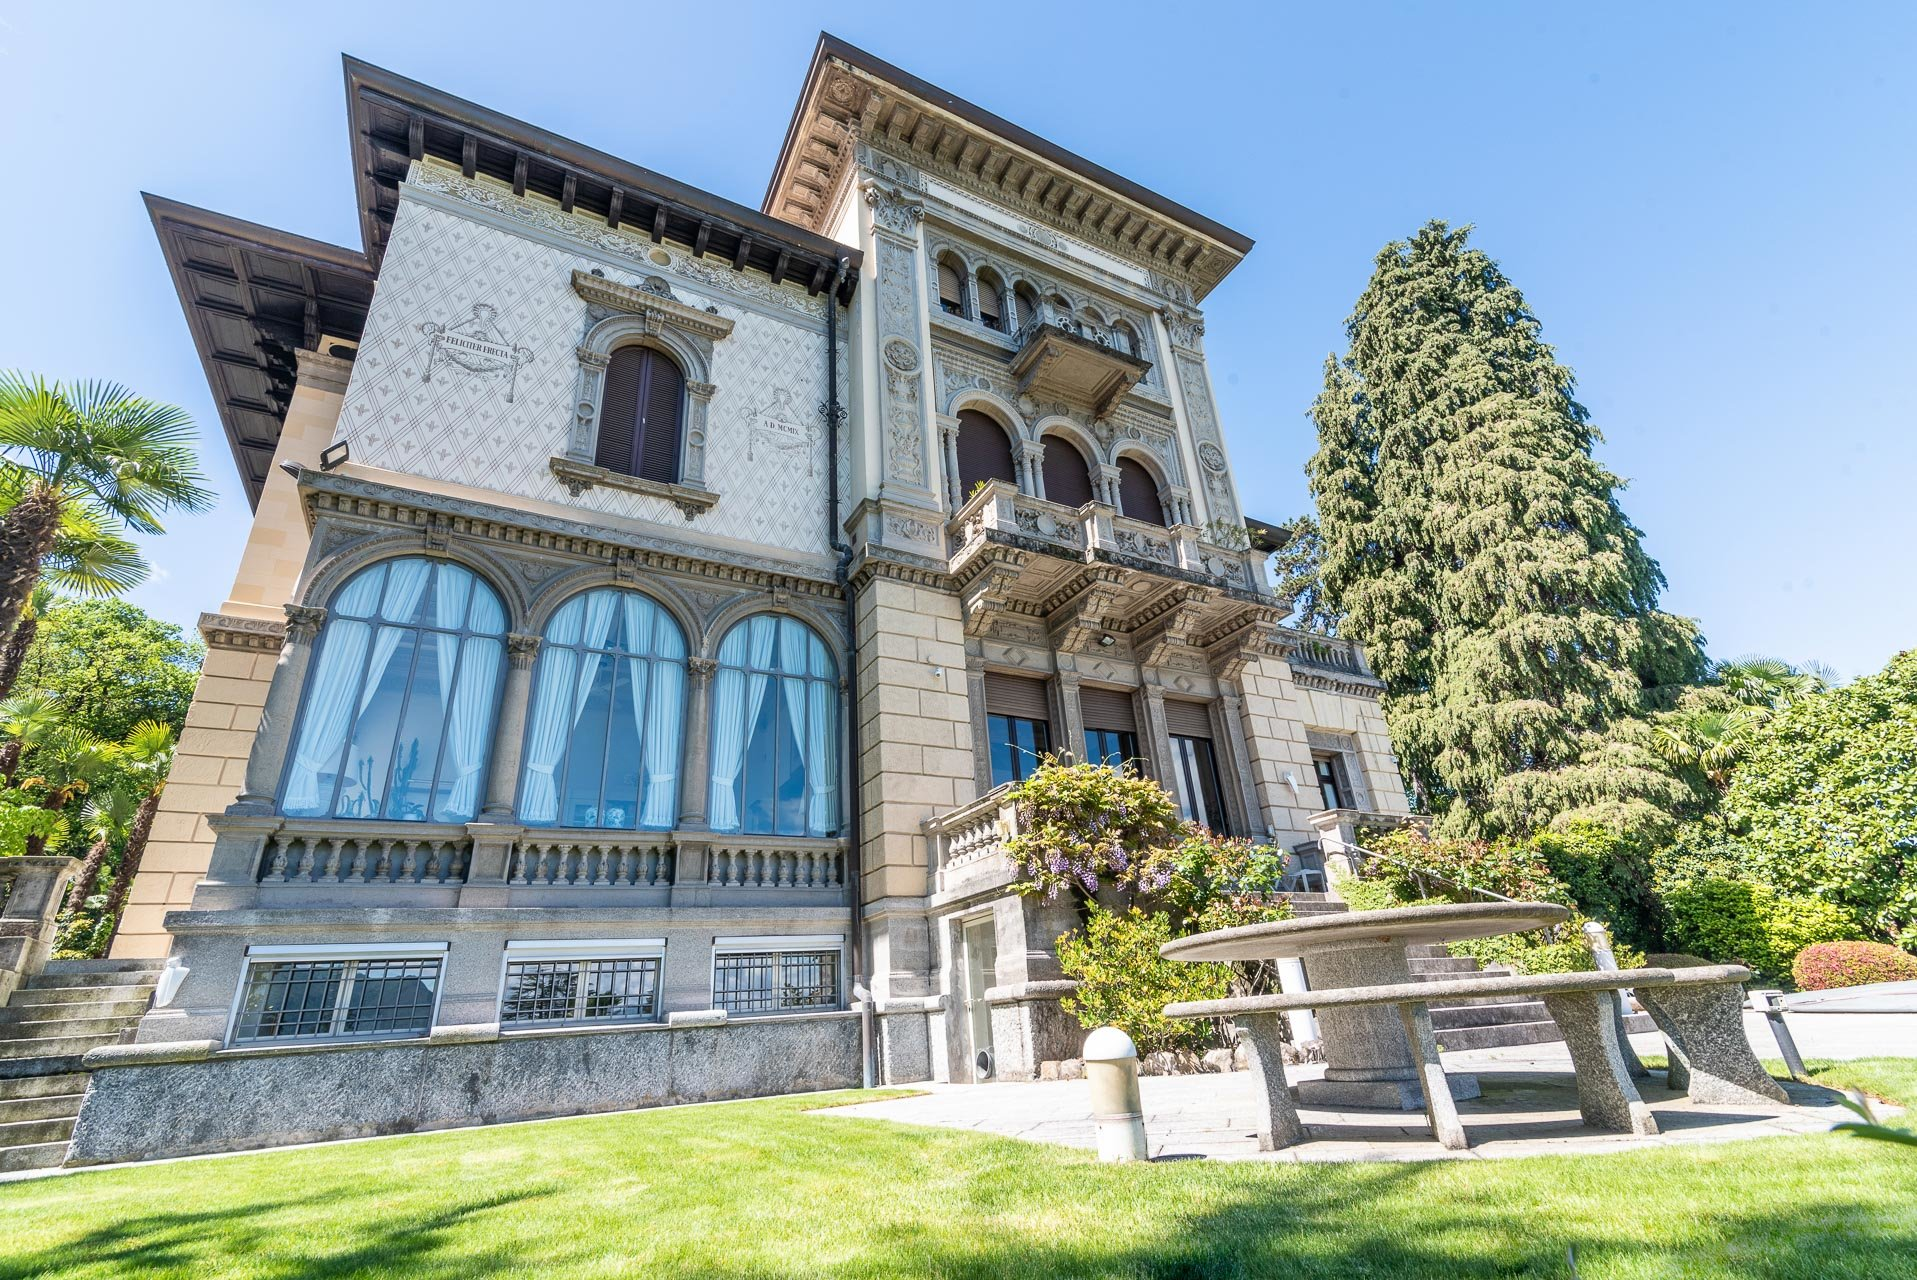 Luxurious apartment for sale in a villa in Stresa - building outside